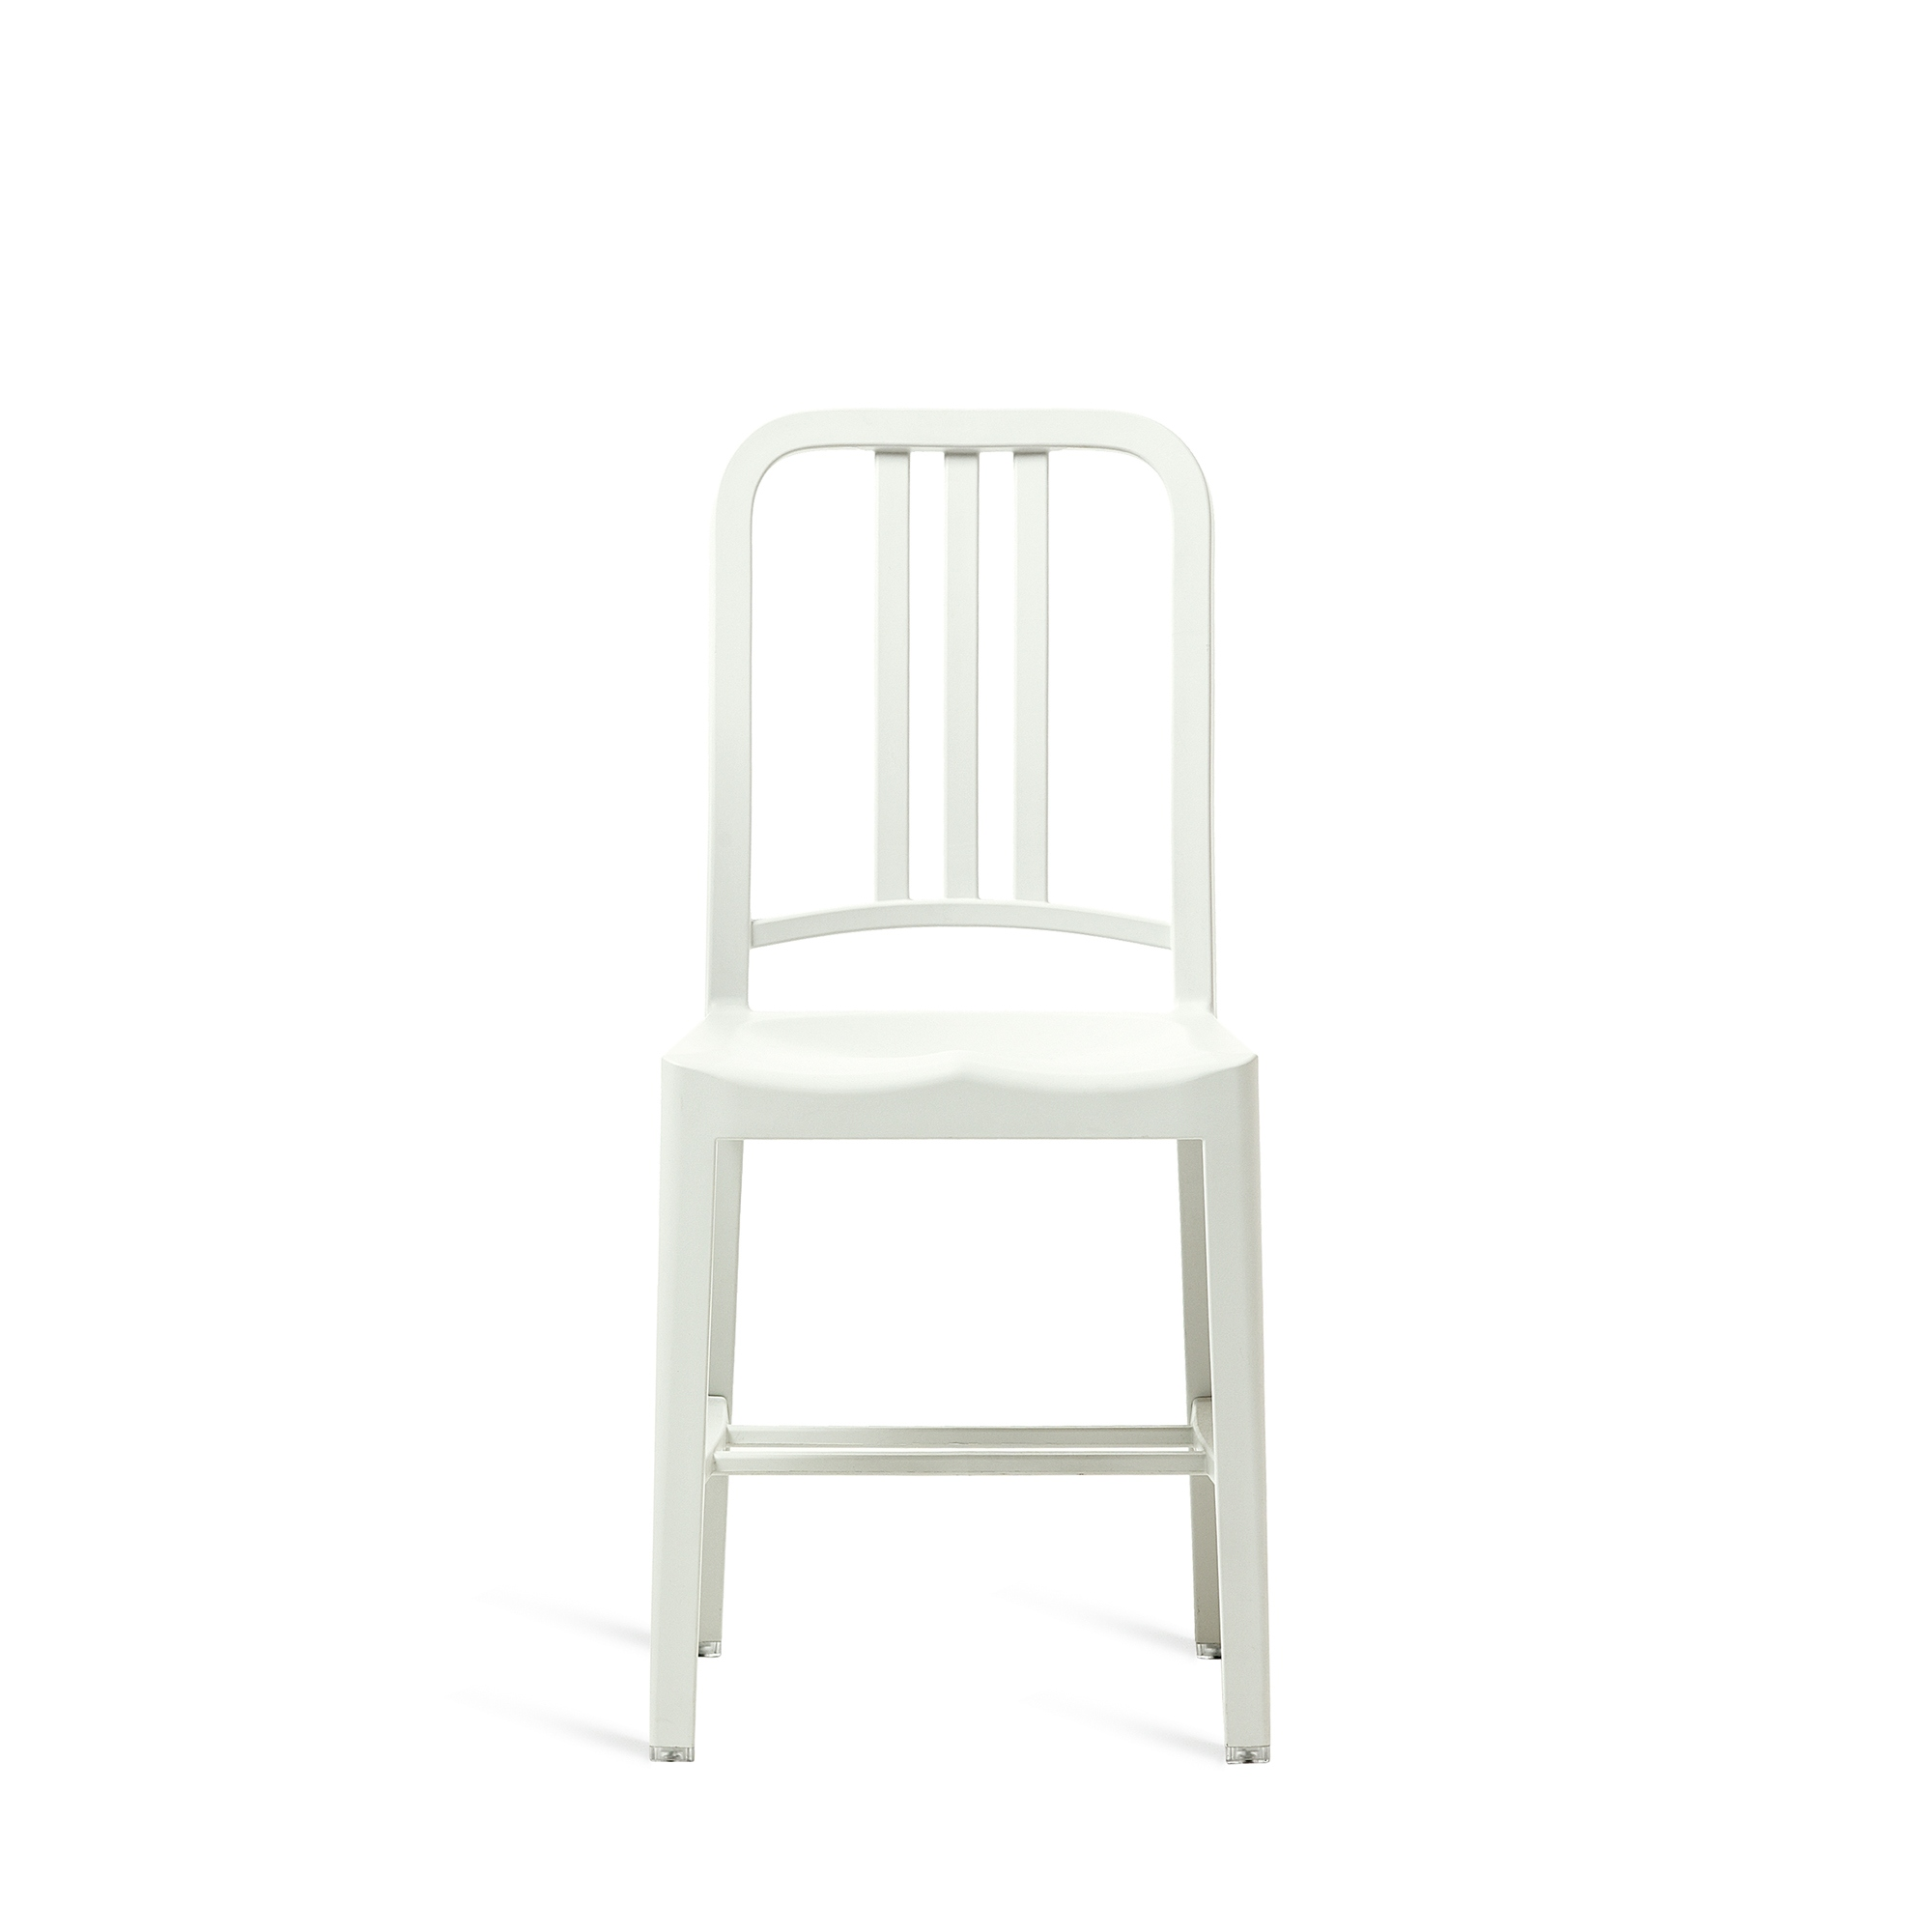 Emeco 111 Navy Chair Coca Cola Made from 111 Recycled Plastic